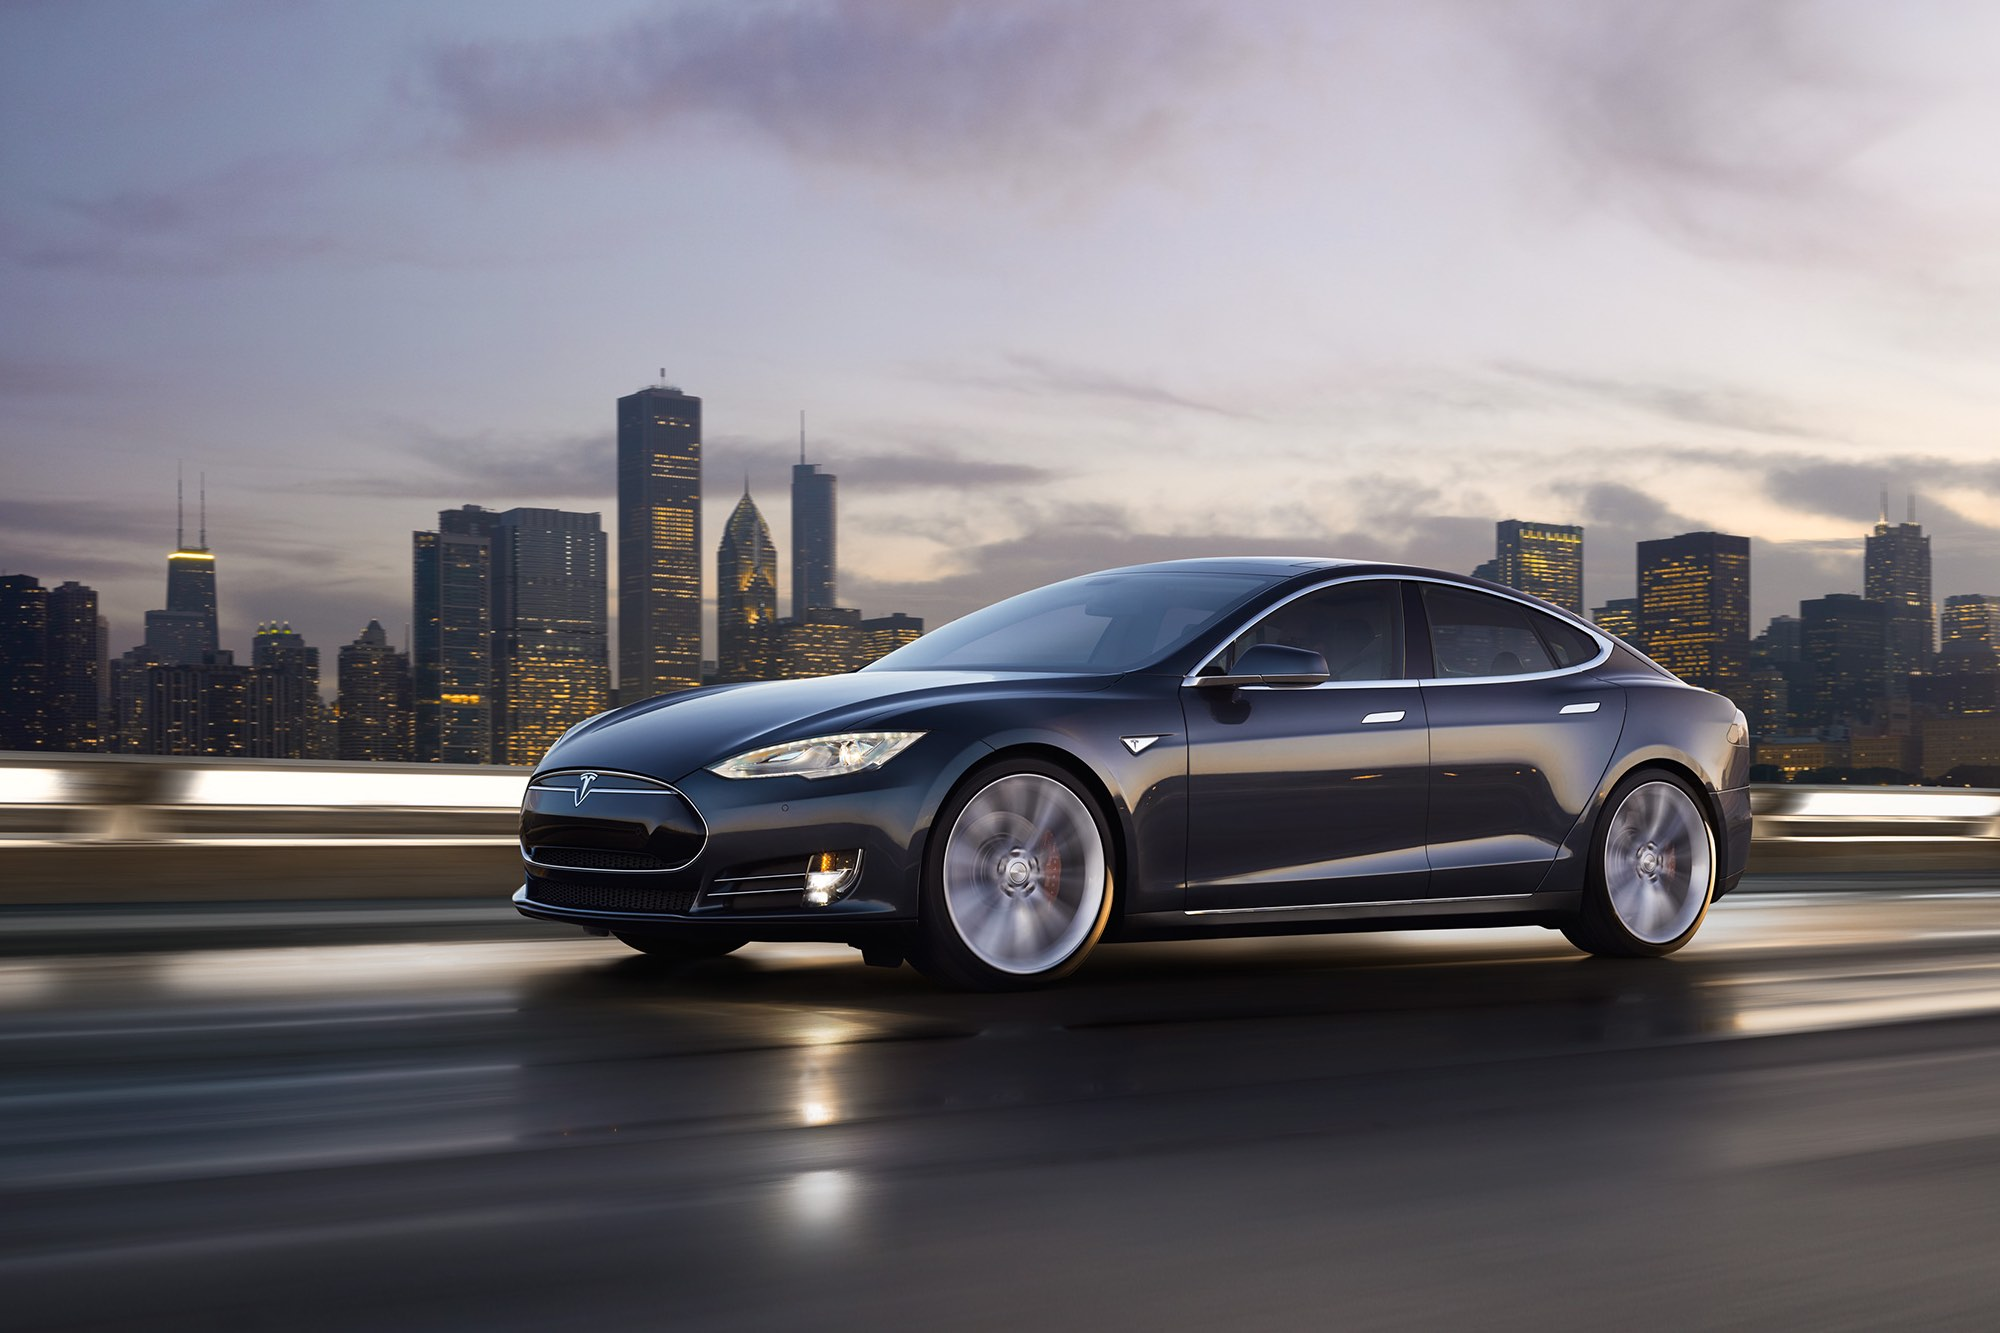 Tesla Model S on highway in motion